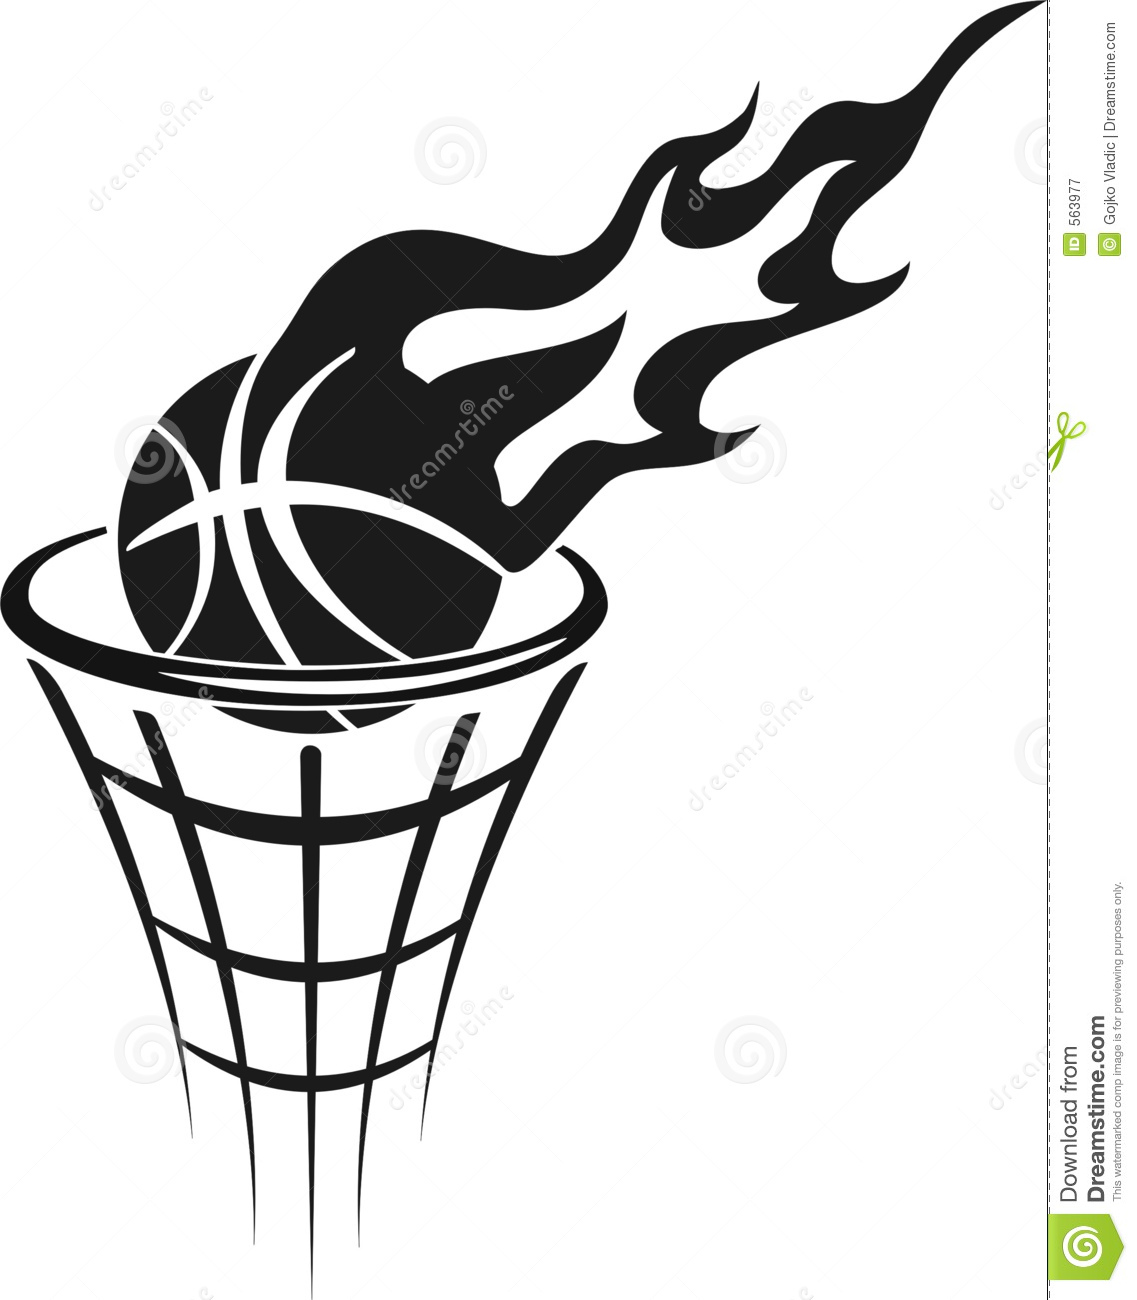 1137x1300 Basketball Black And White Abstract Clipart